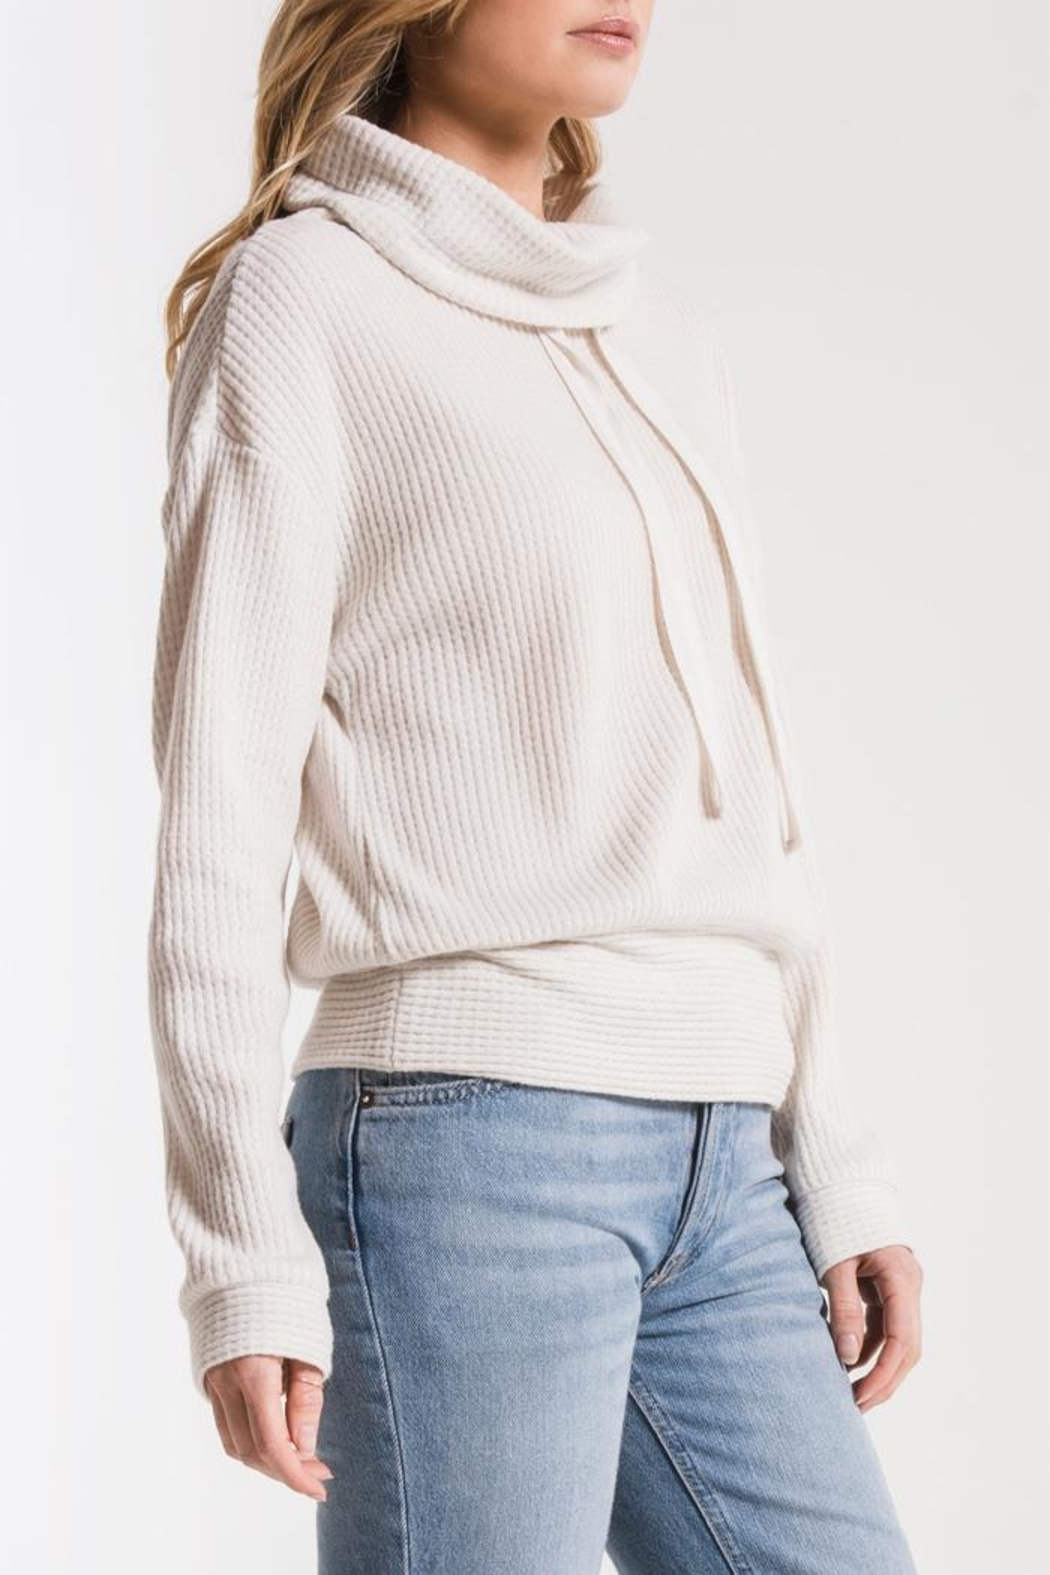 z supply Waffle Thermal Top - Front Full Image